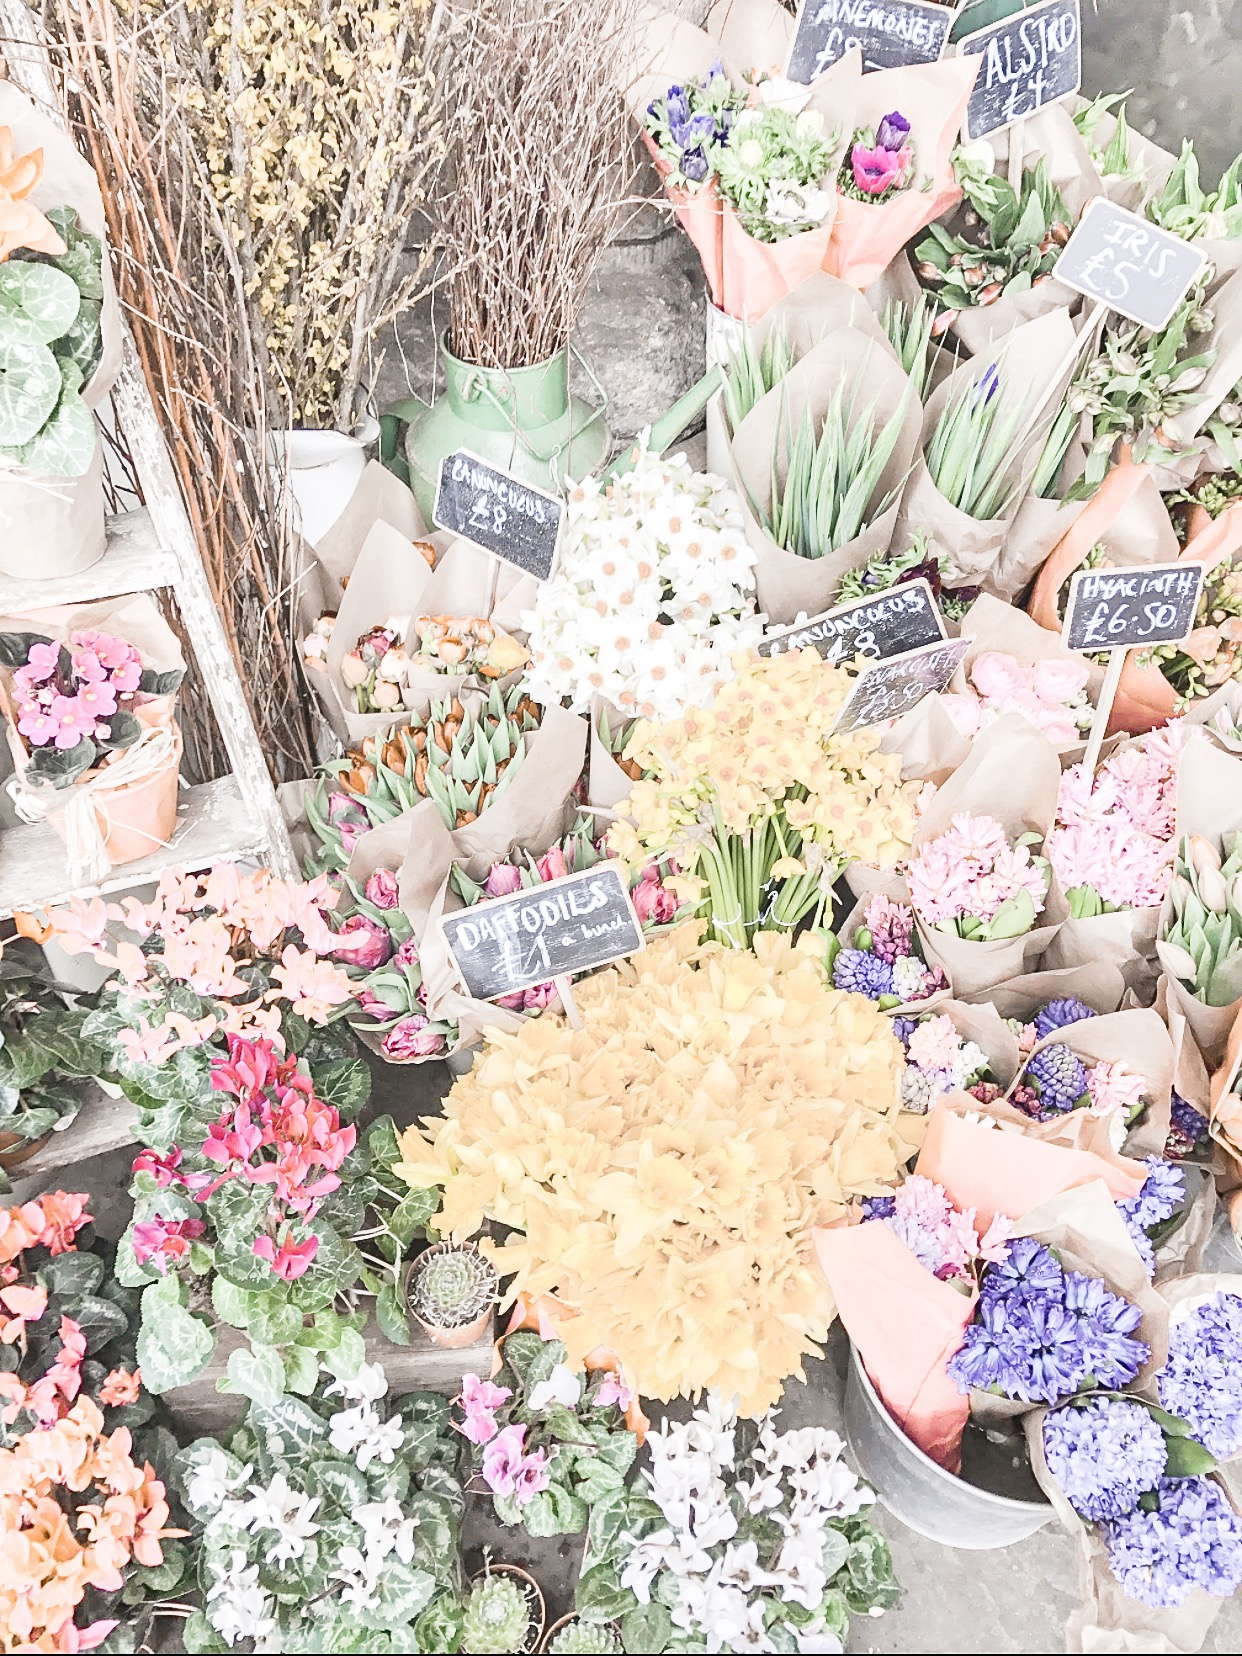 Flowers at a market stall Pouss Design